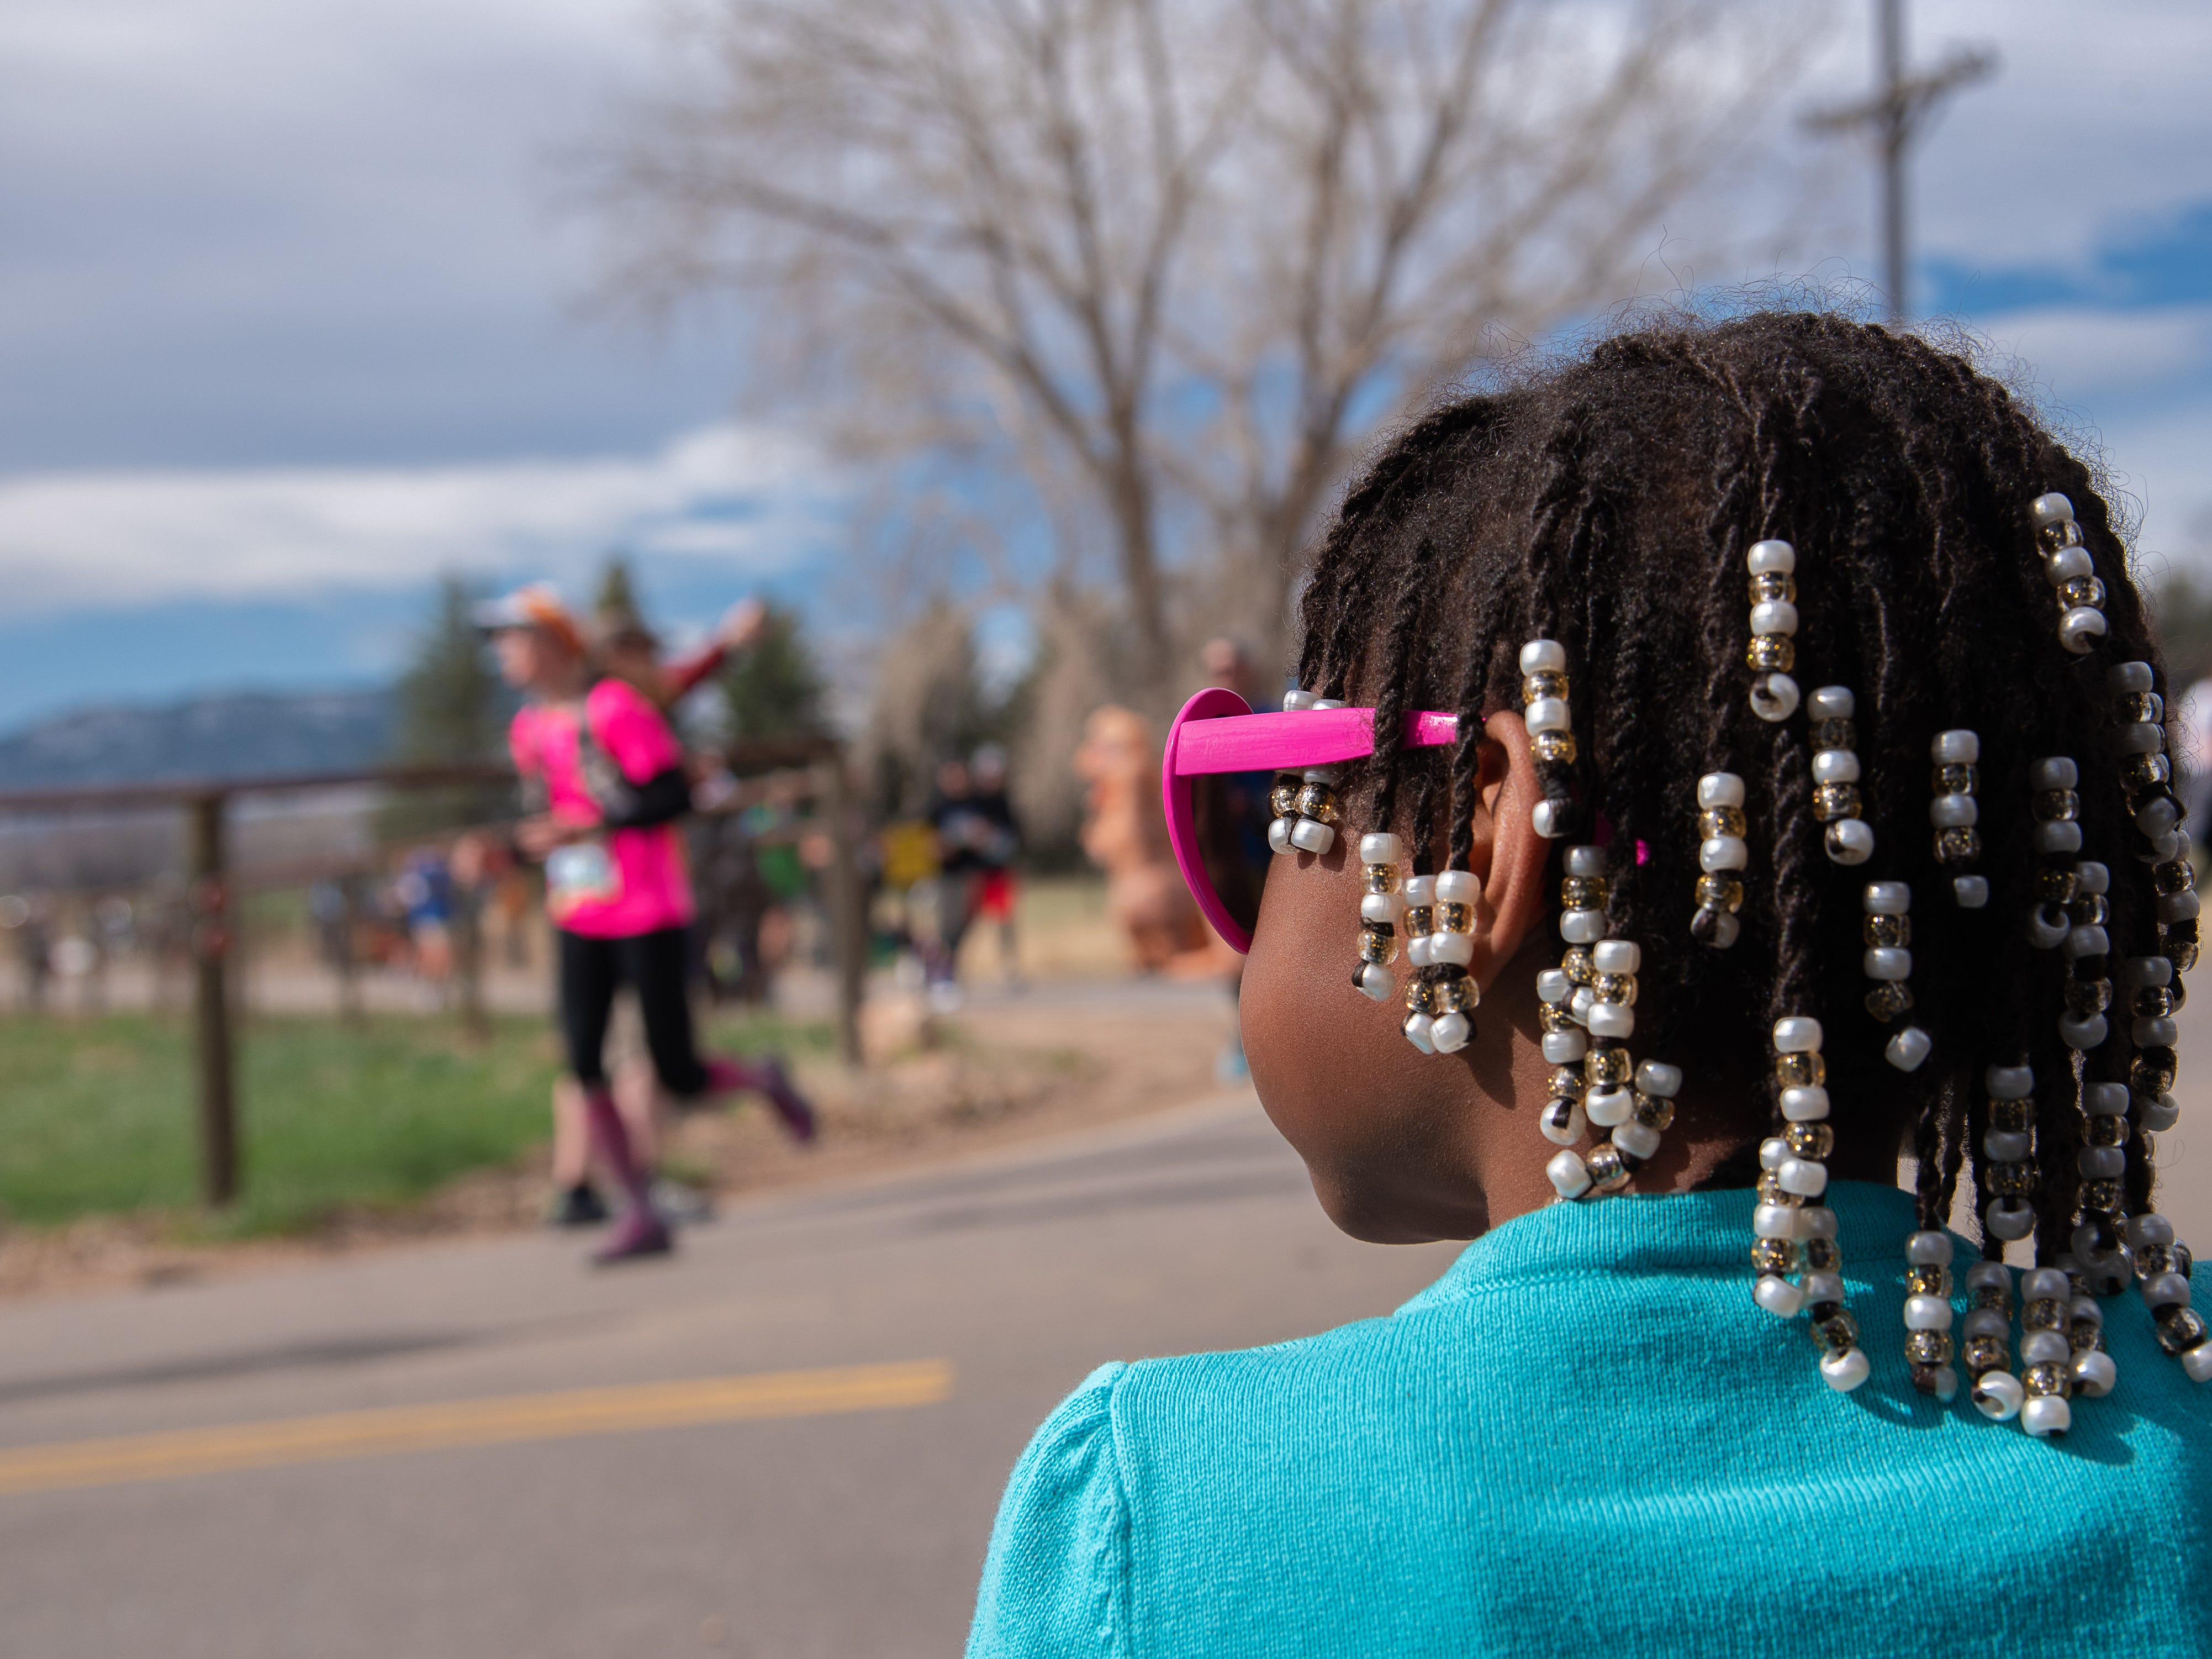 Samantha Benson, 6, watches race participants make a turn and head east on Bingham Hill Road during the Horsetooth Half Marathon on Sunday, April 14, 2019, in Fort Collins, Colo.